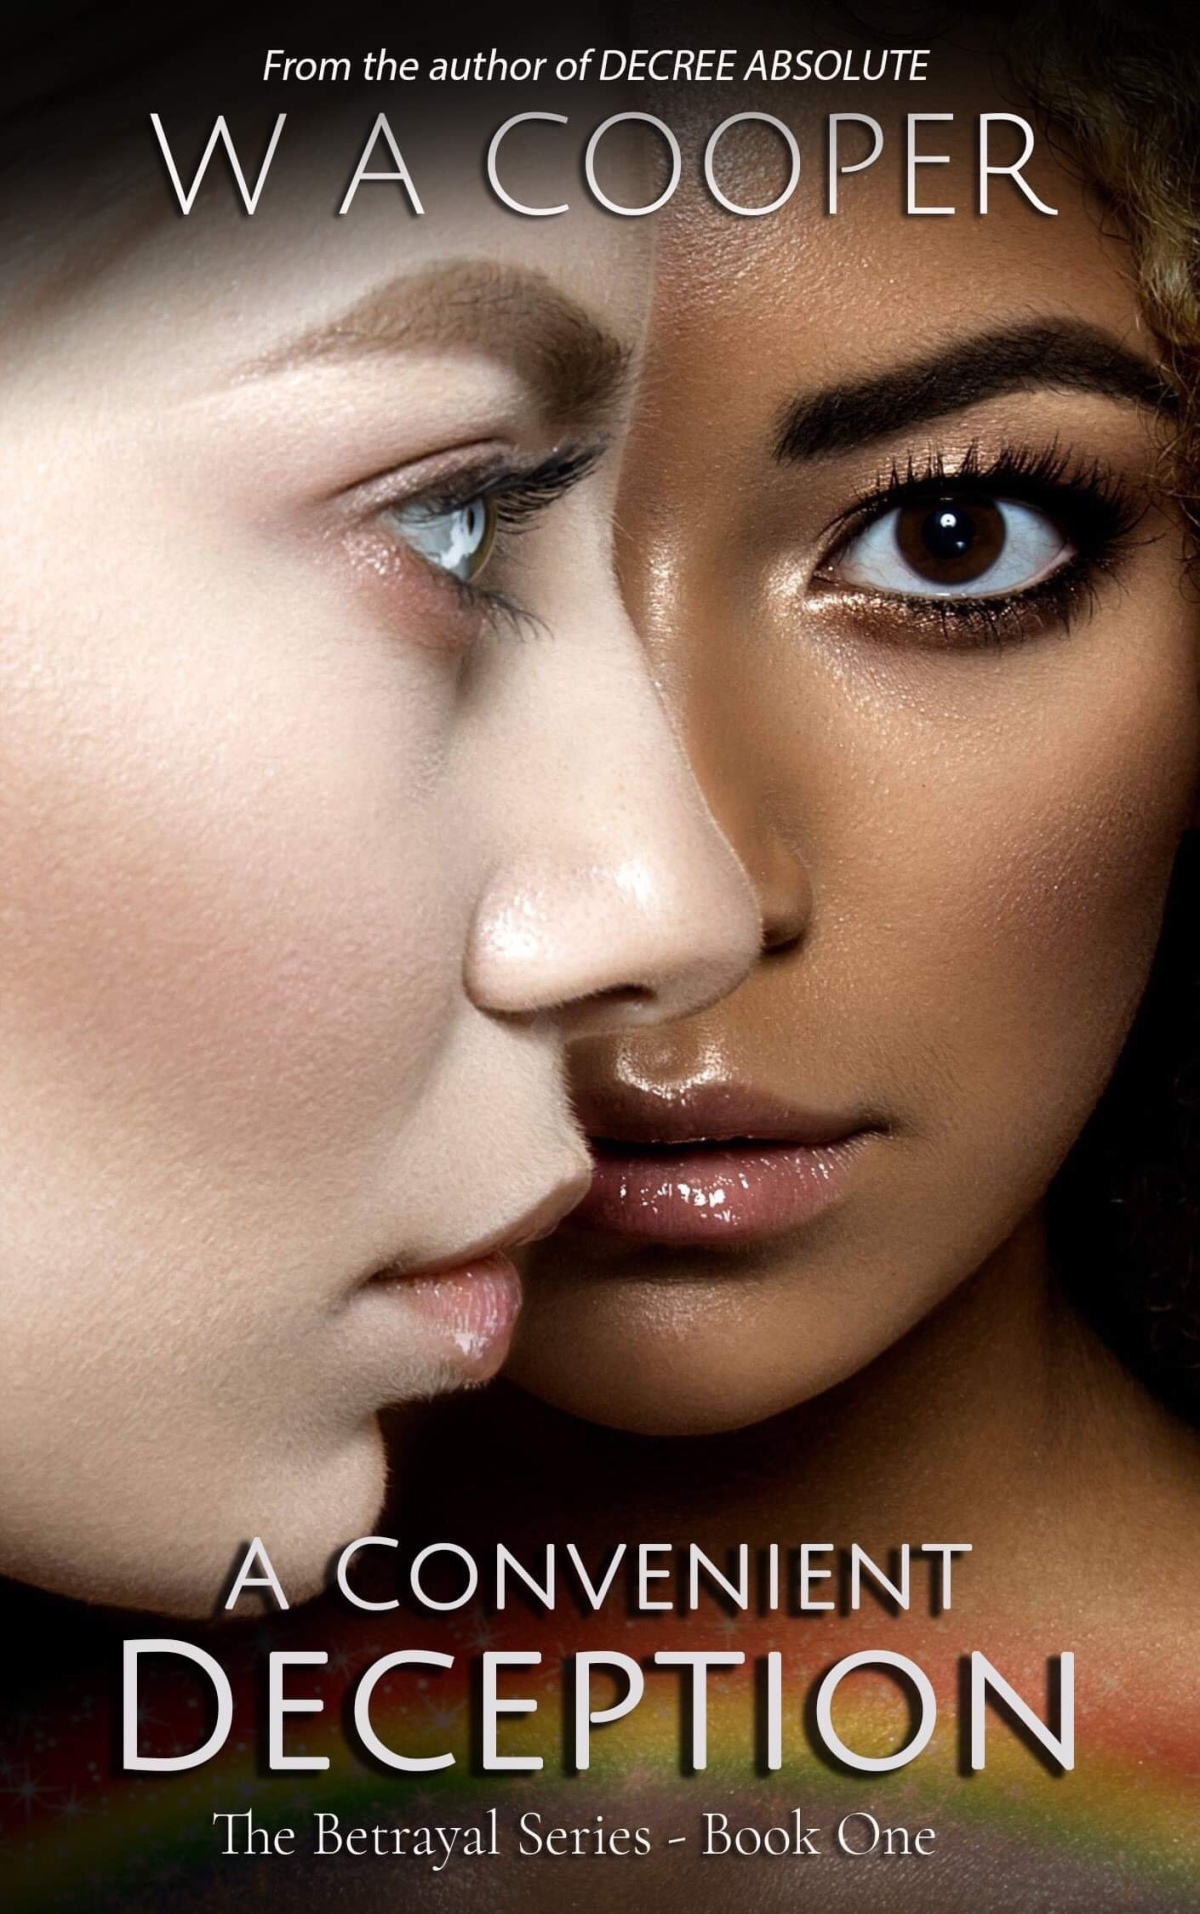 'A Convenient Deception: The Betrayal Series – Book One' by W.A.Cooper